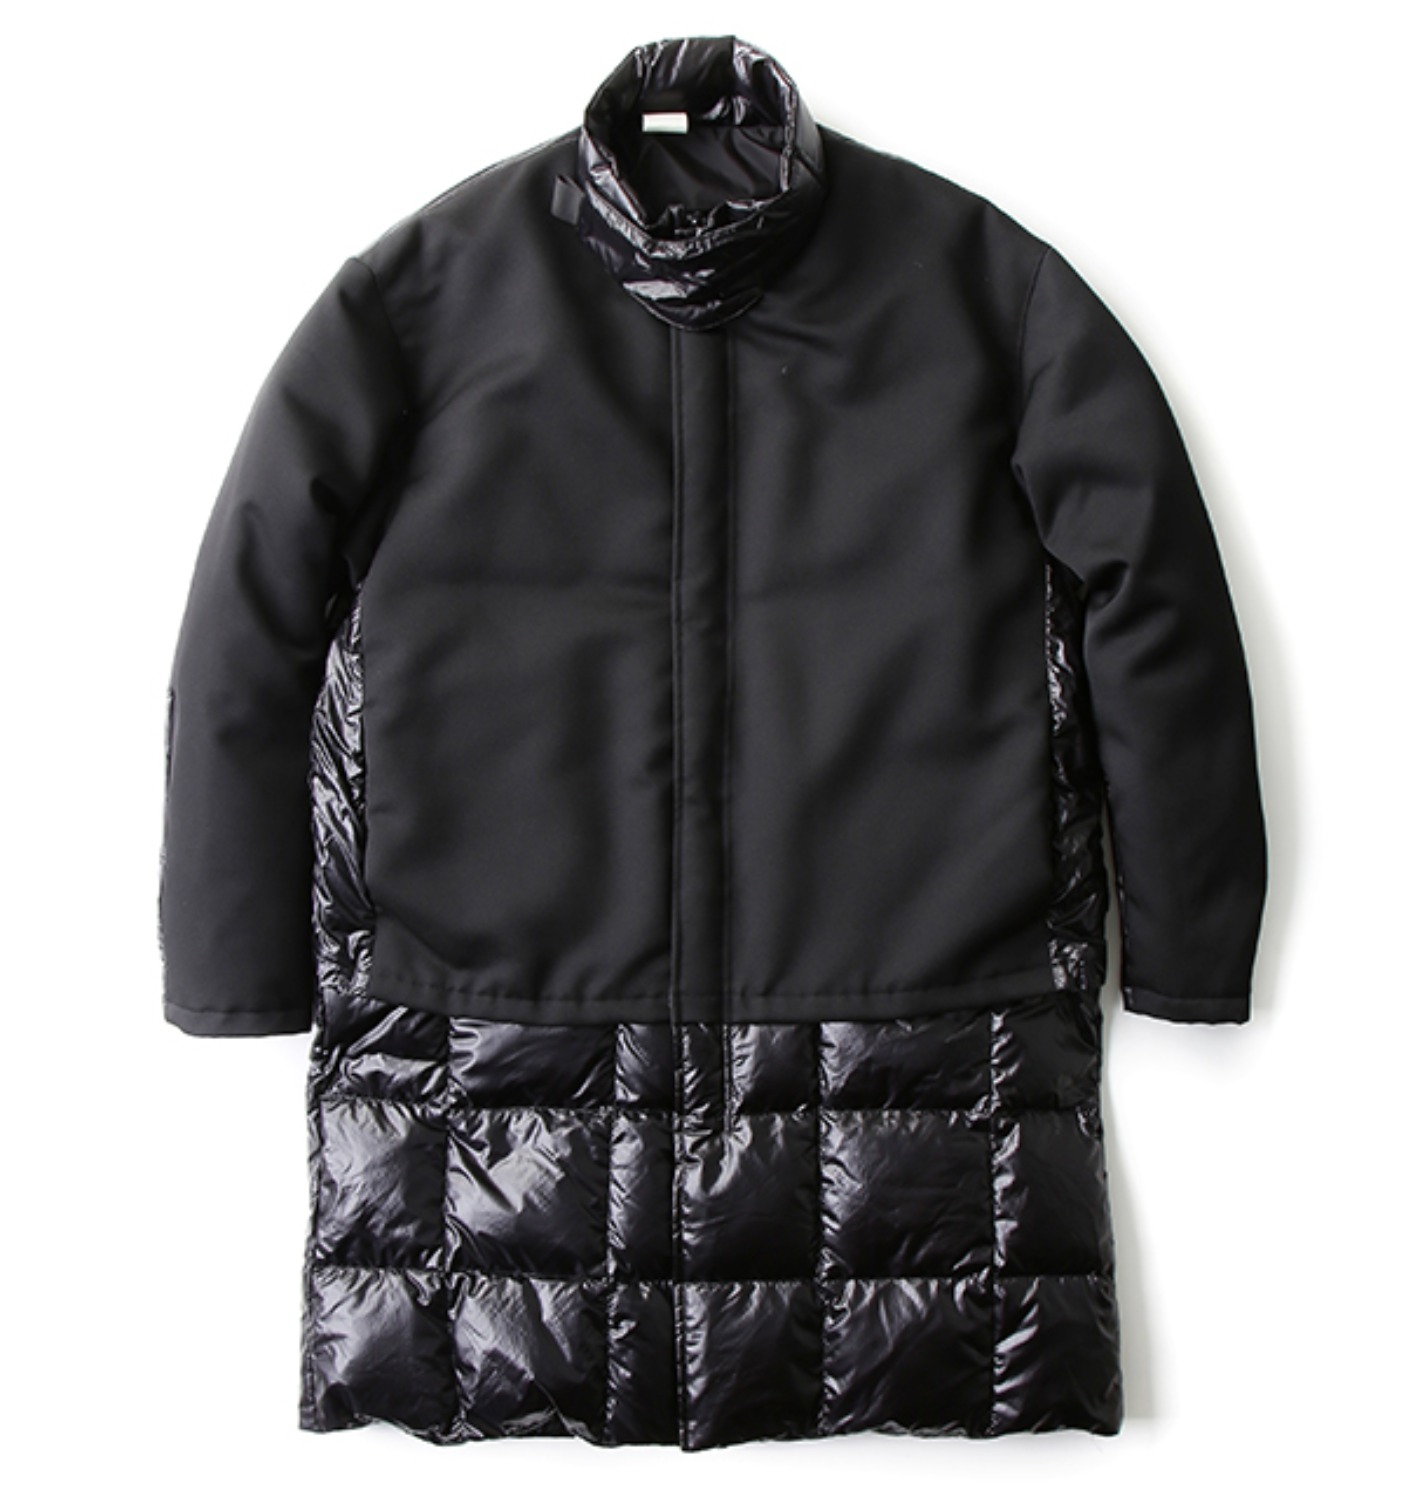 DOWN COAT BLACK(162-C003007)